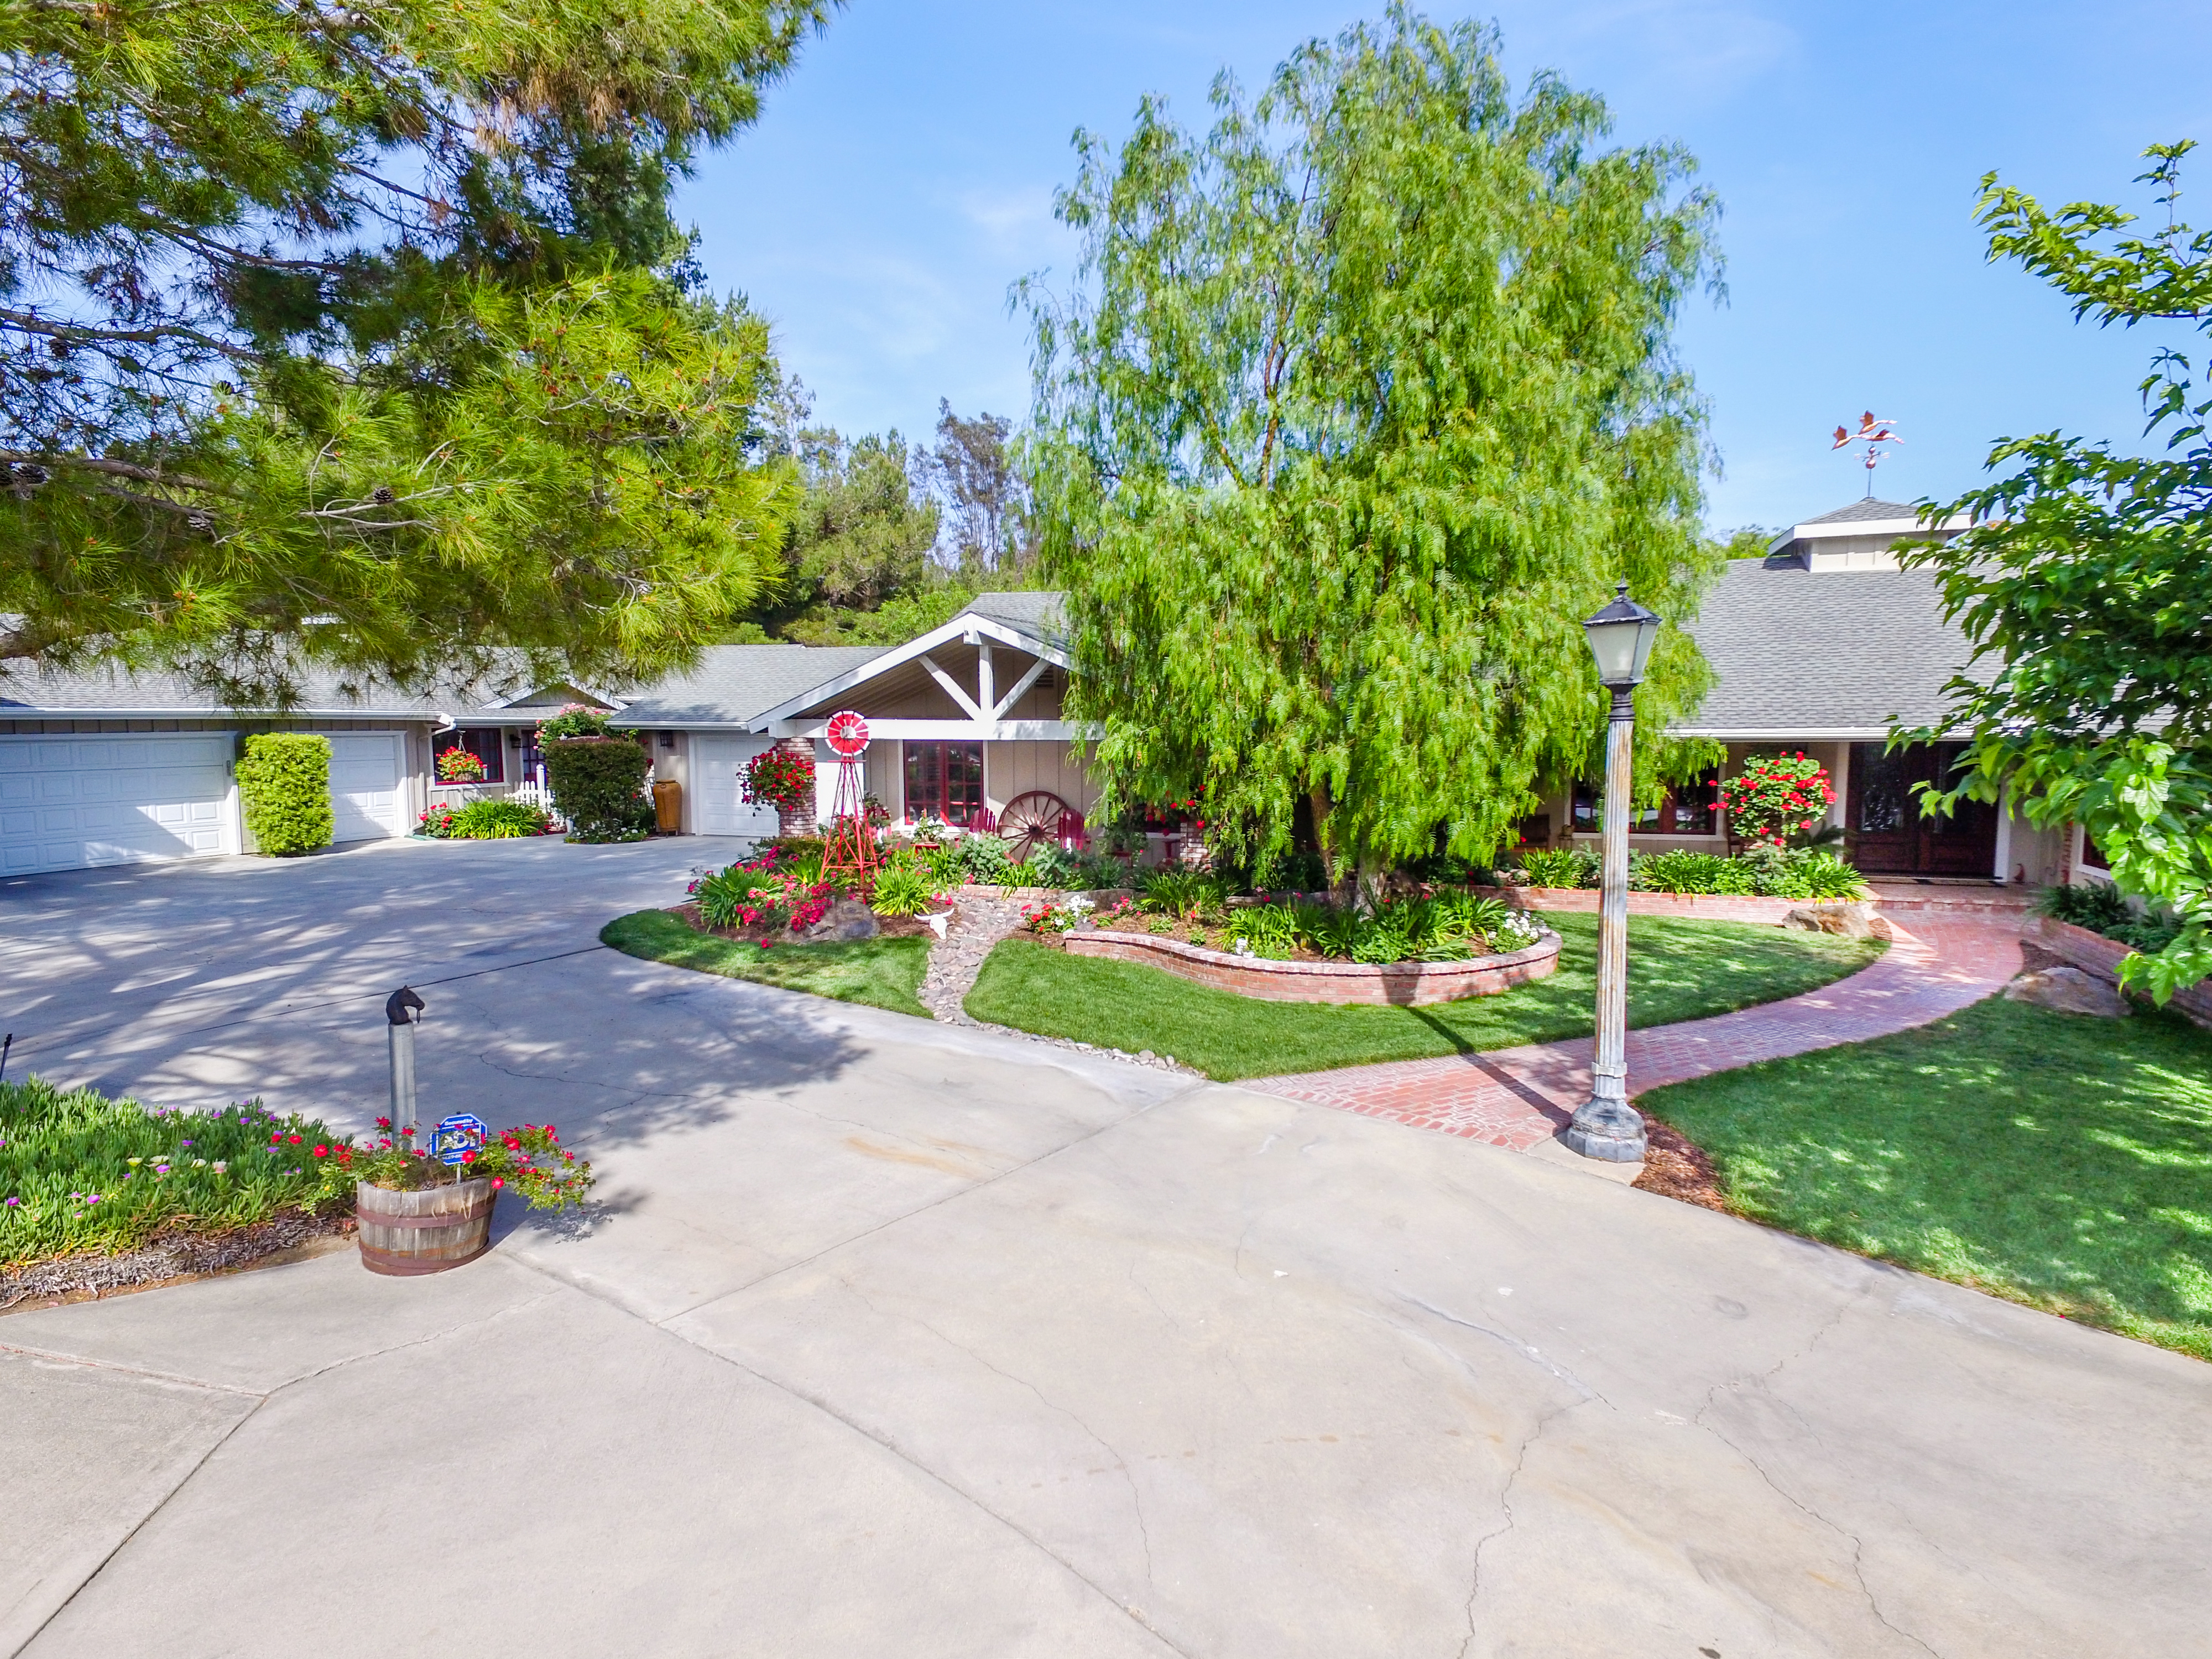 30460 Cabrillo Ave-x drone-ext-6